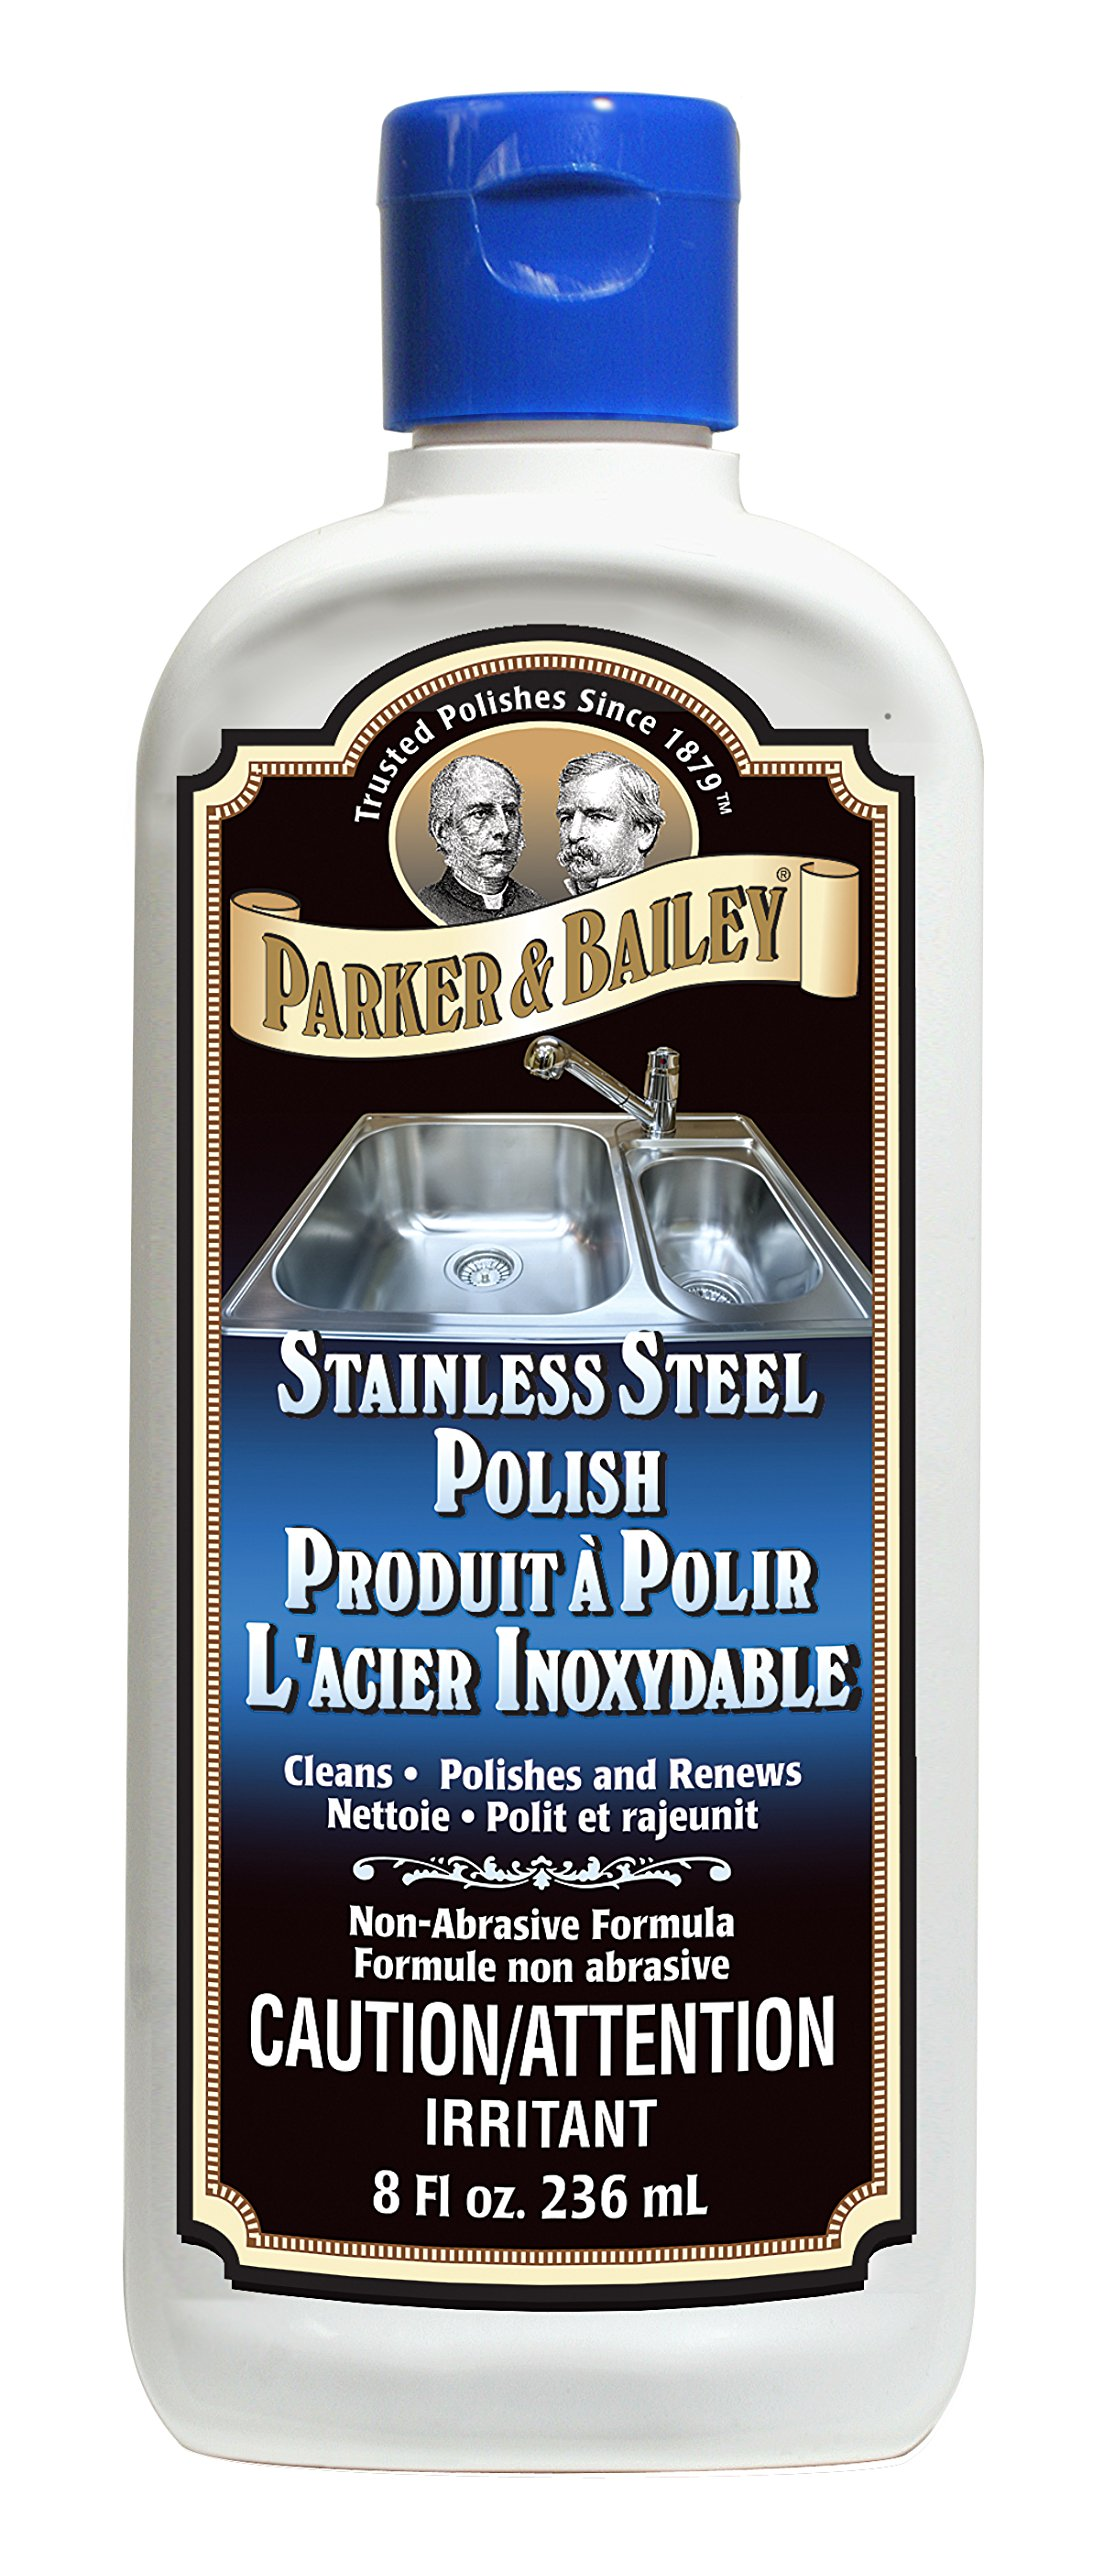 Parker & Bailey Stainless Steel Polish 8oz